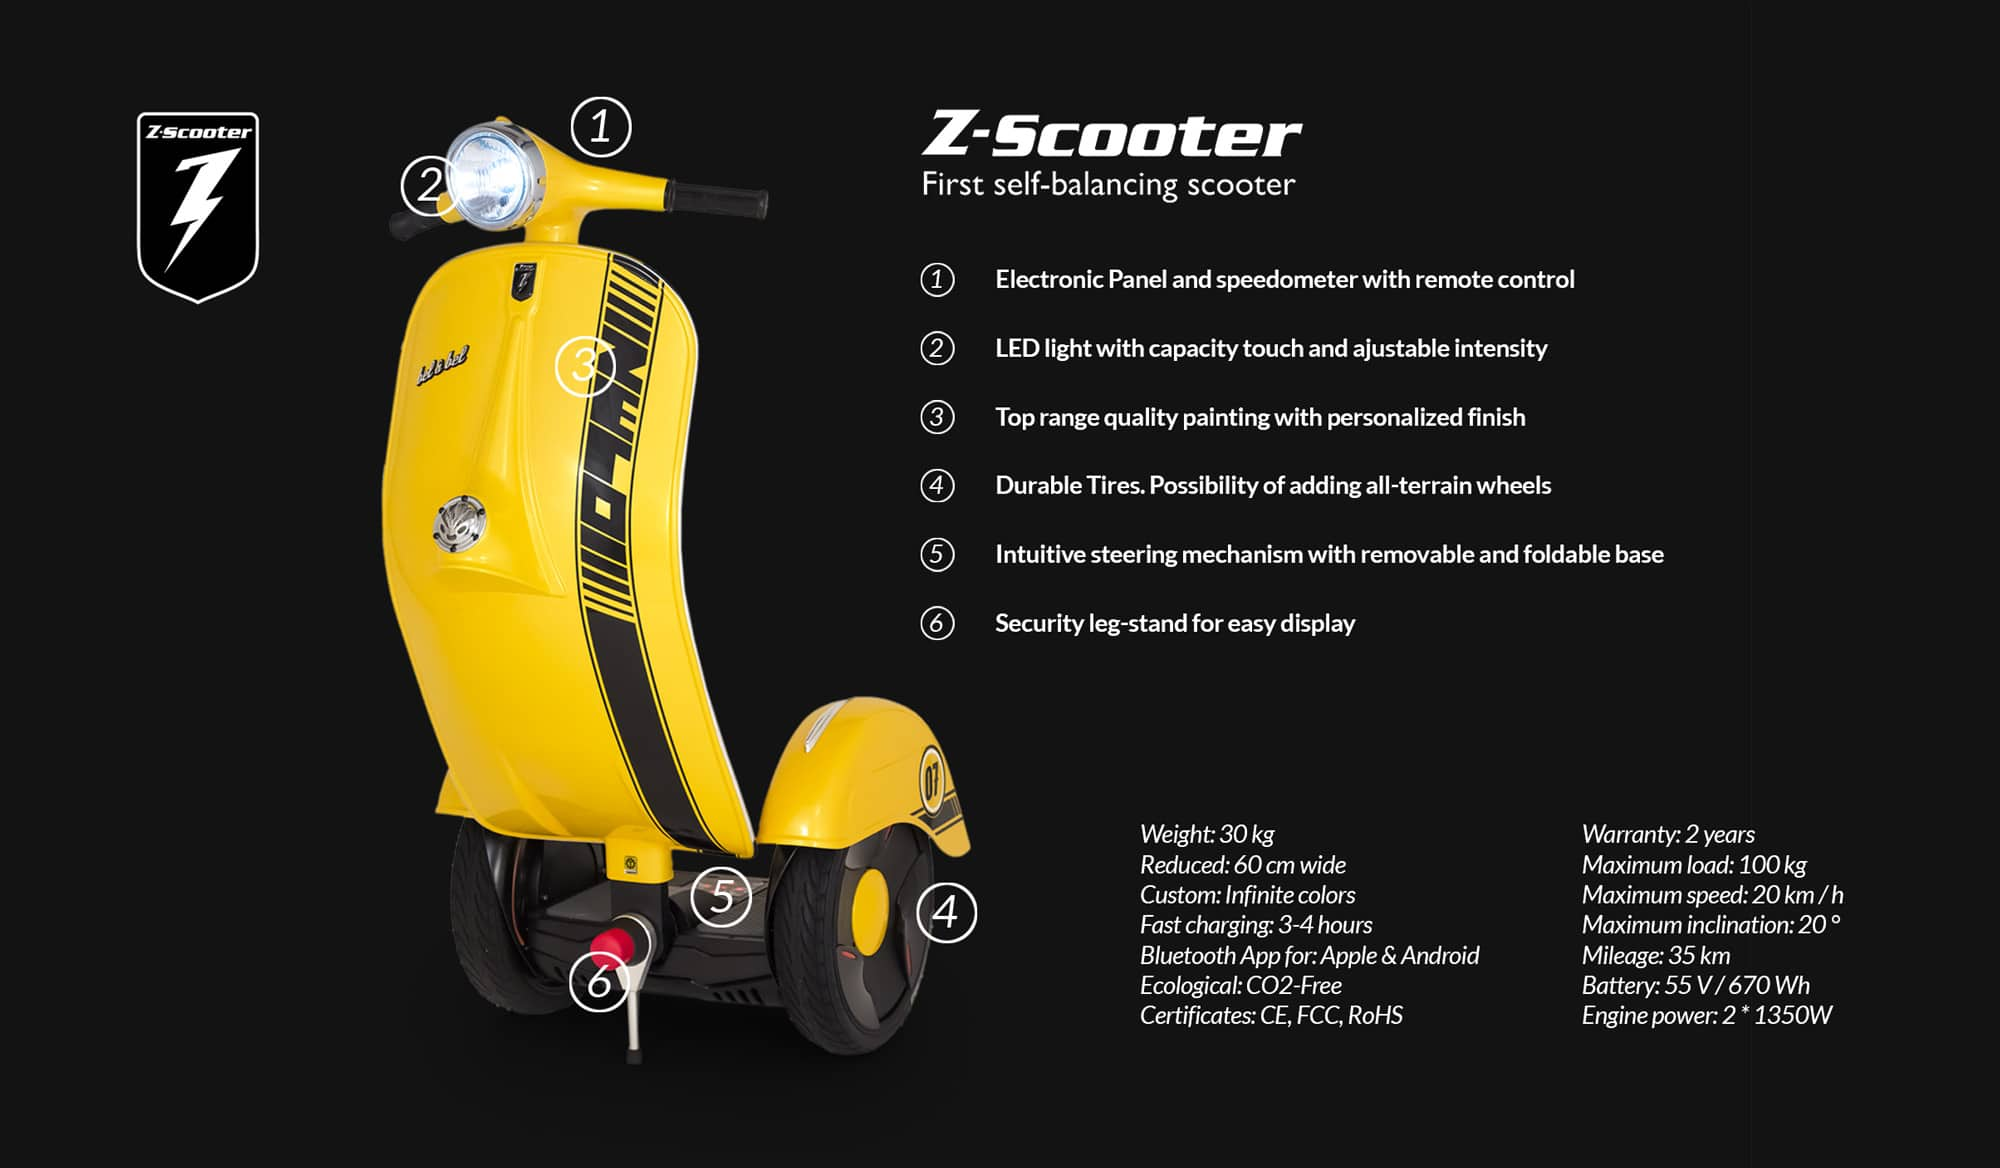 Z-Scooter Technical Specifications